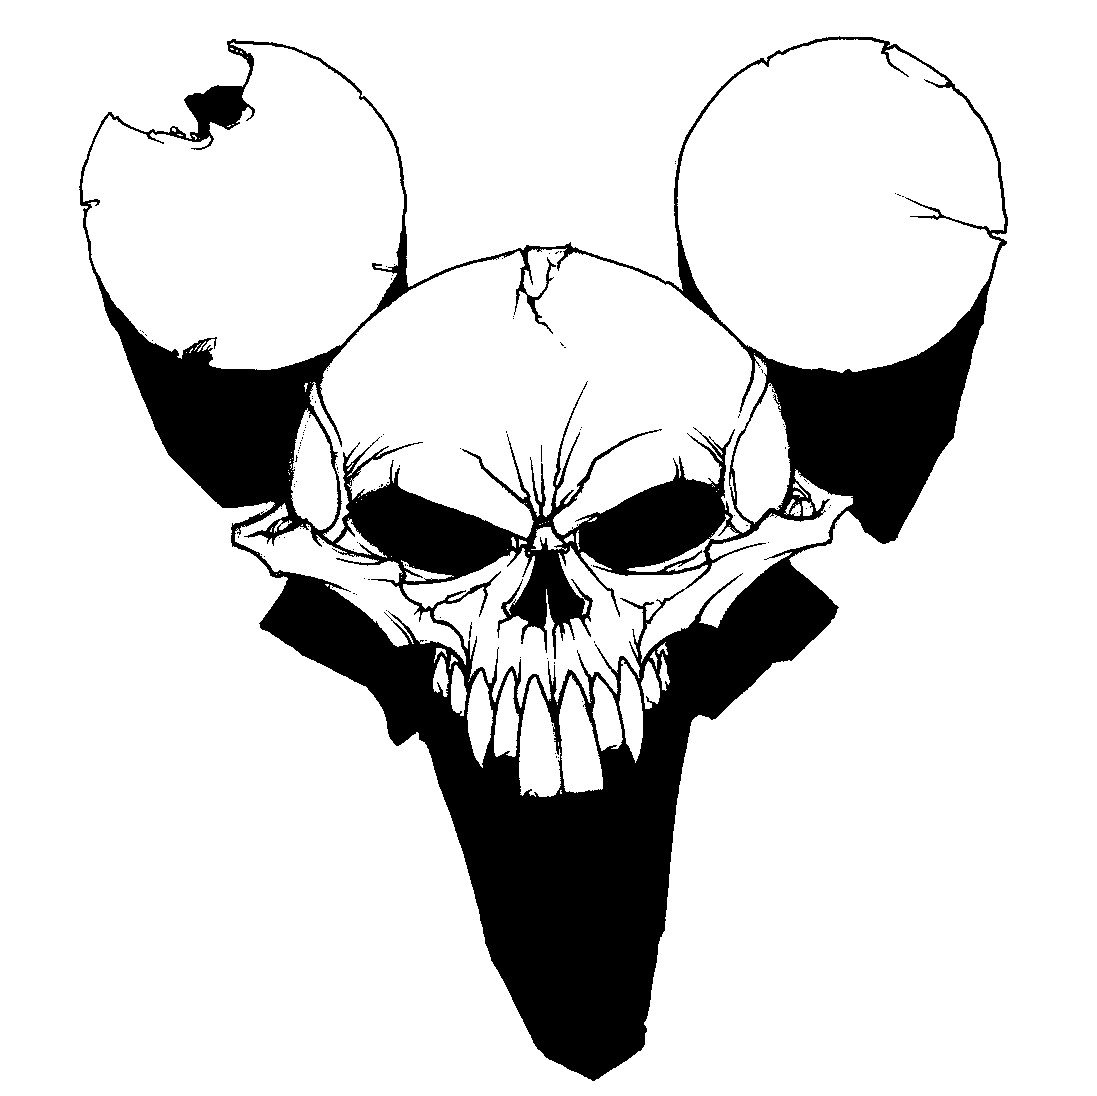 Rat Skull Drawing at GetDrawings.com | Free for personal use Rat ...